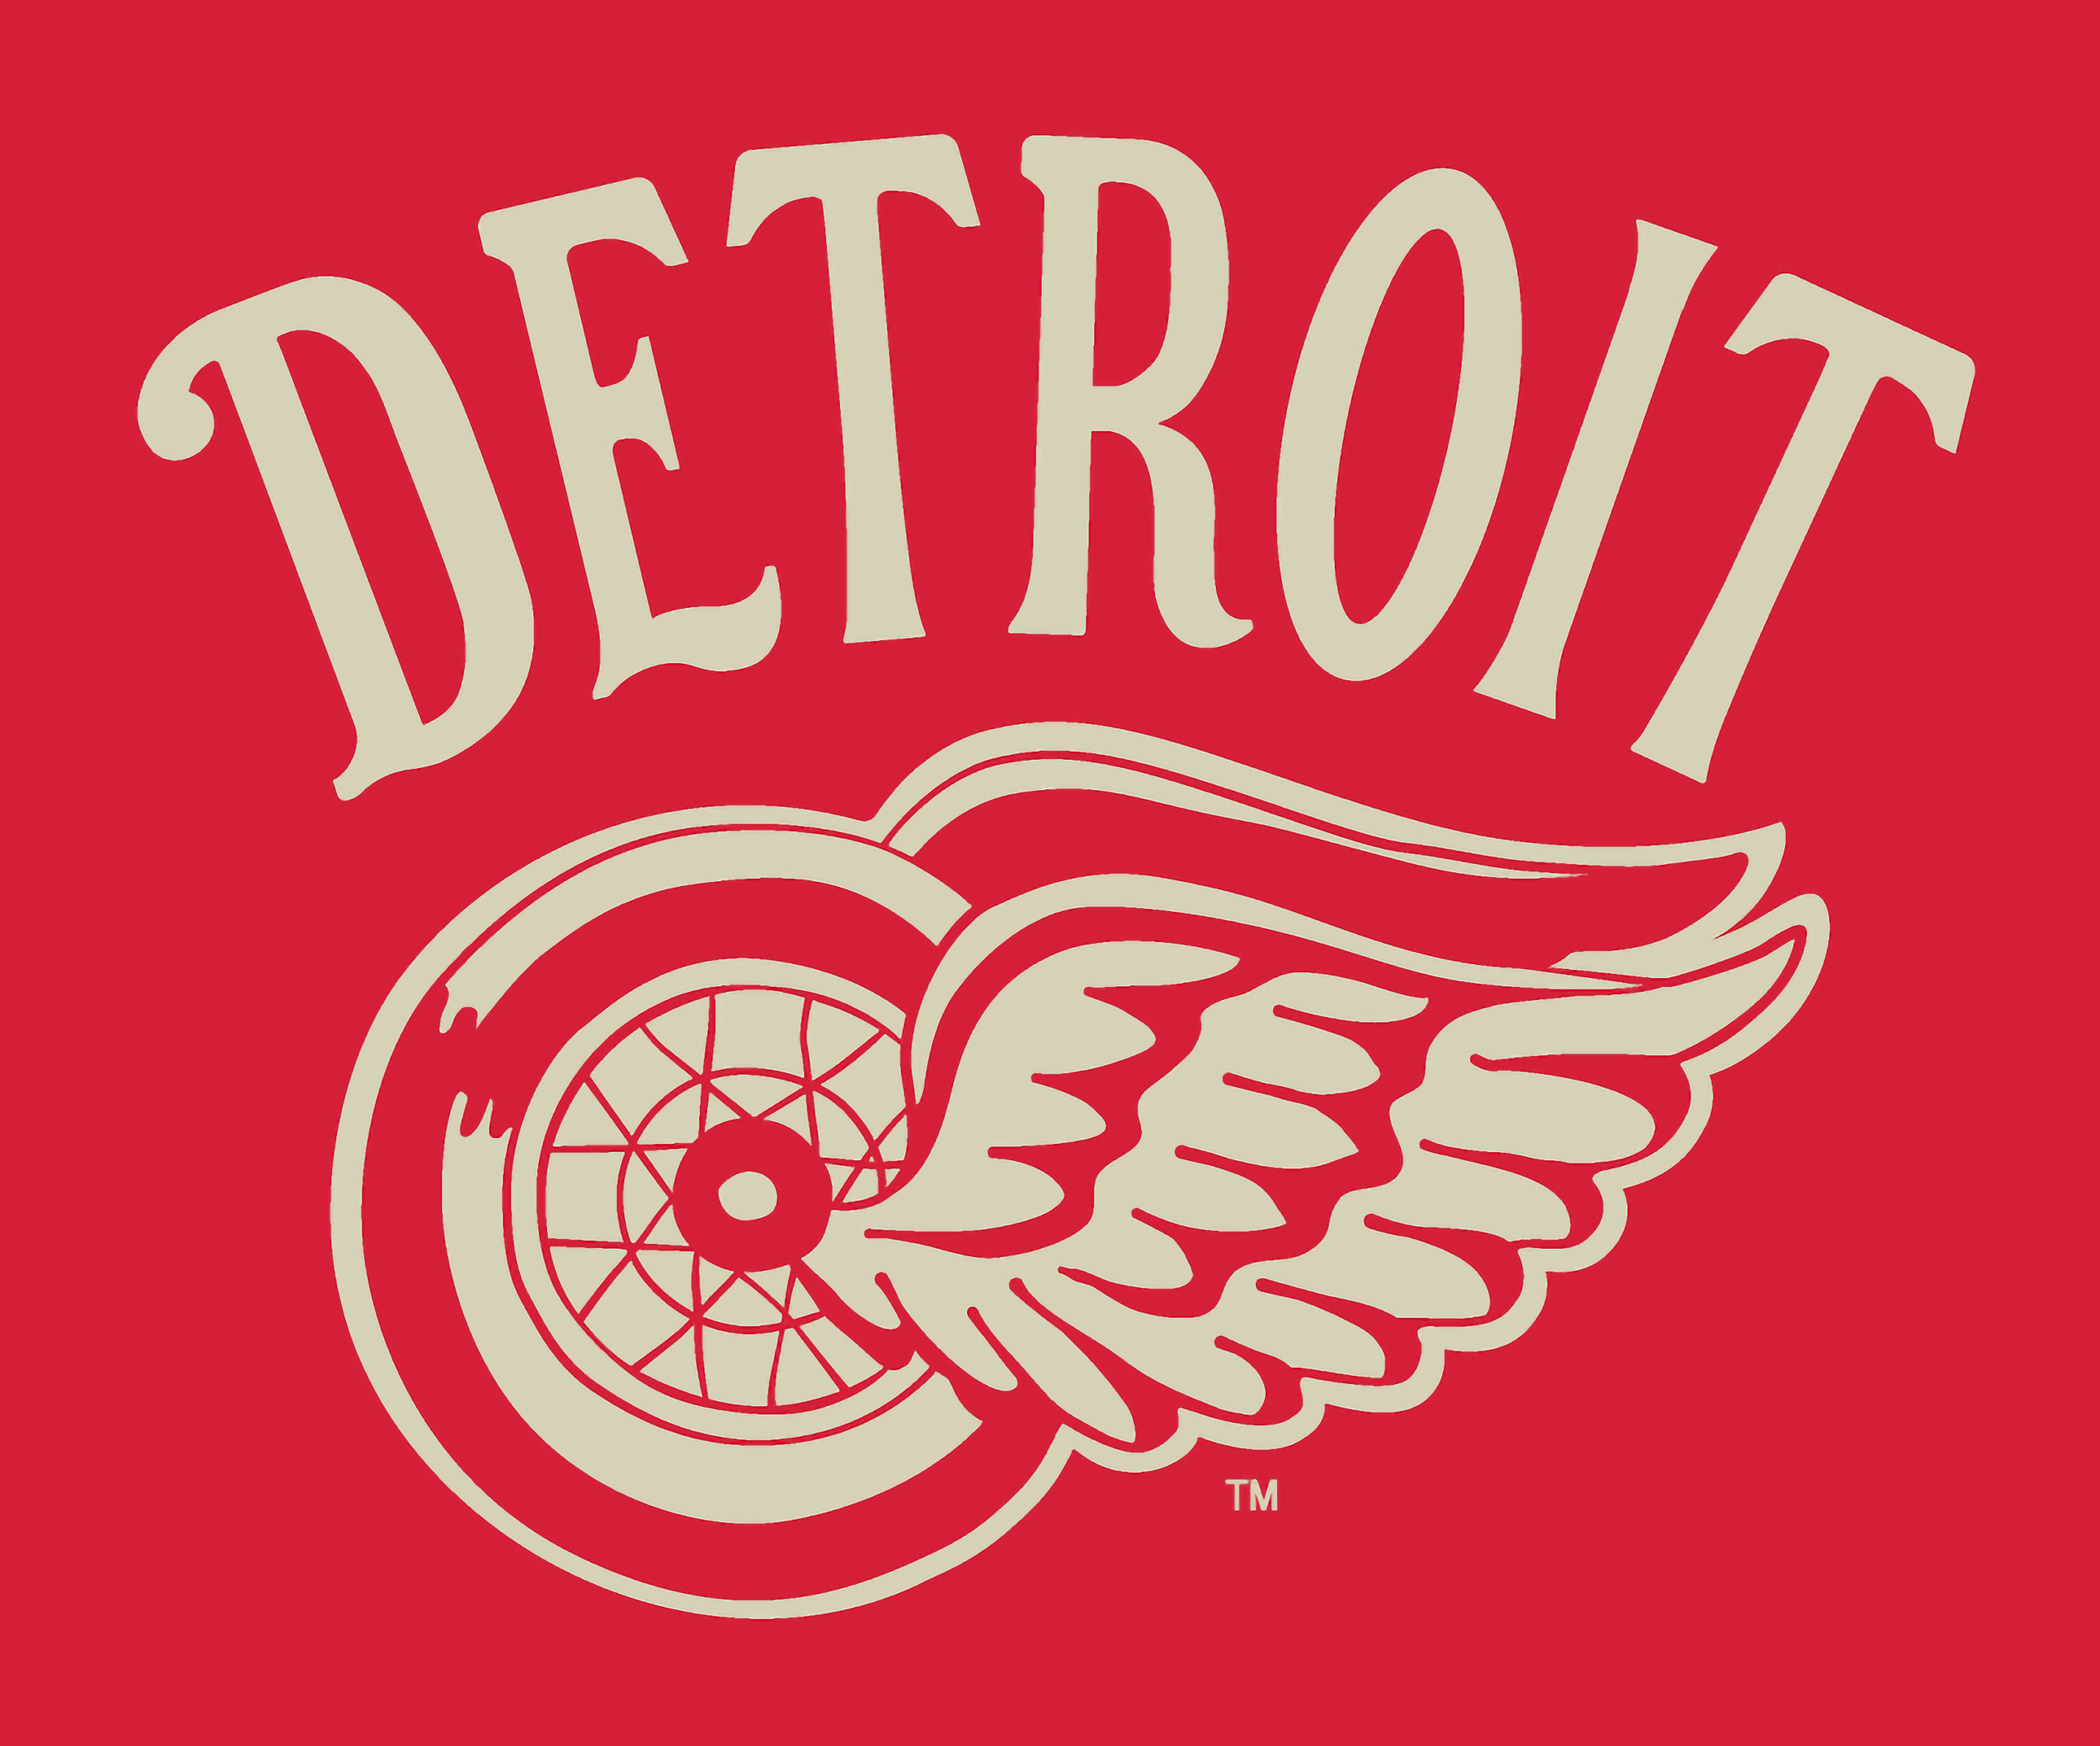 2560x2128 Sports - Detroit Red Wings Wallpaper